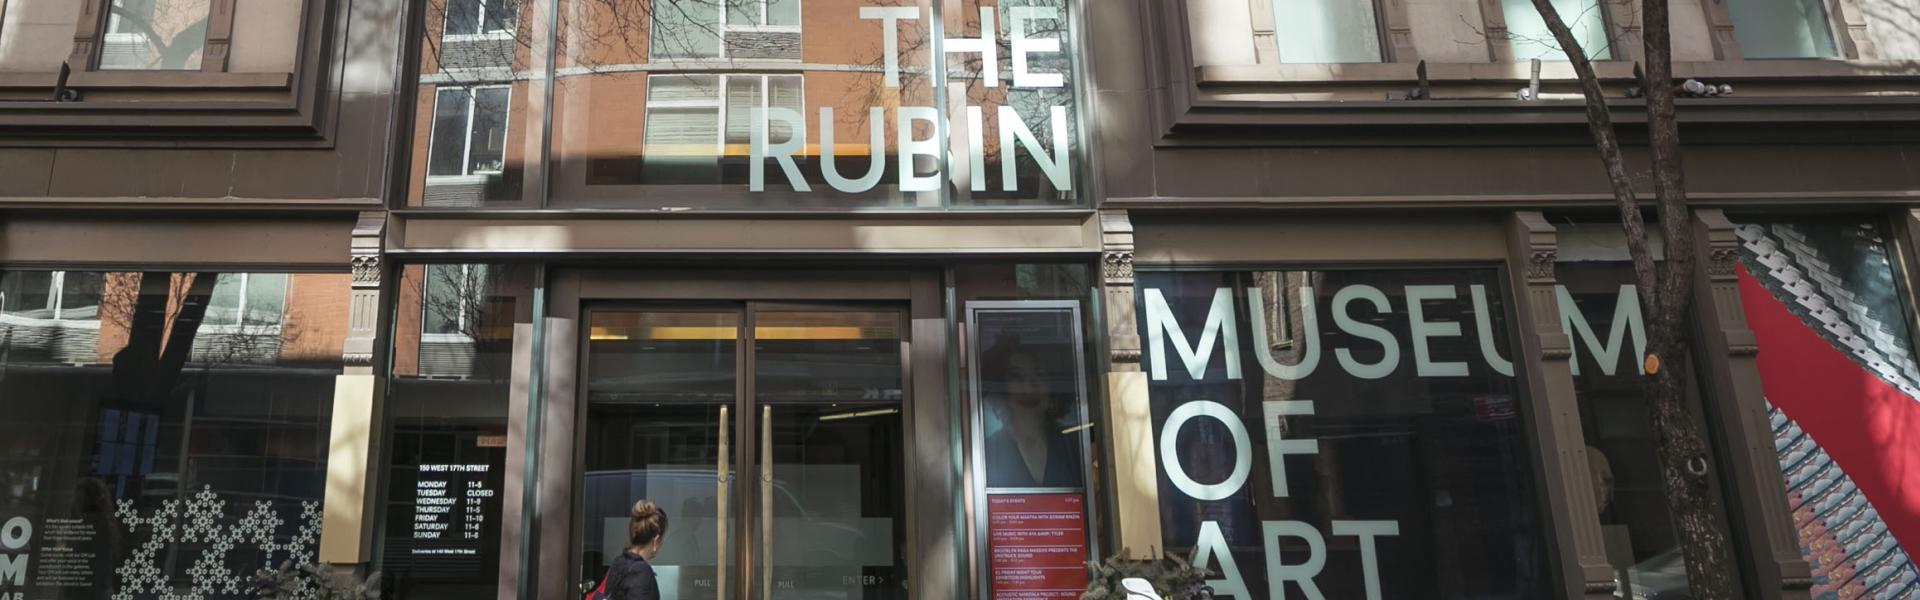 Rubin Museum of Art, Flatiron, Manhattan, NYC